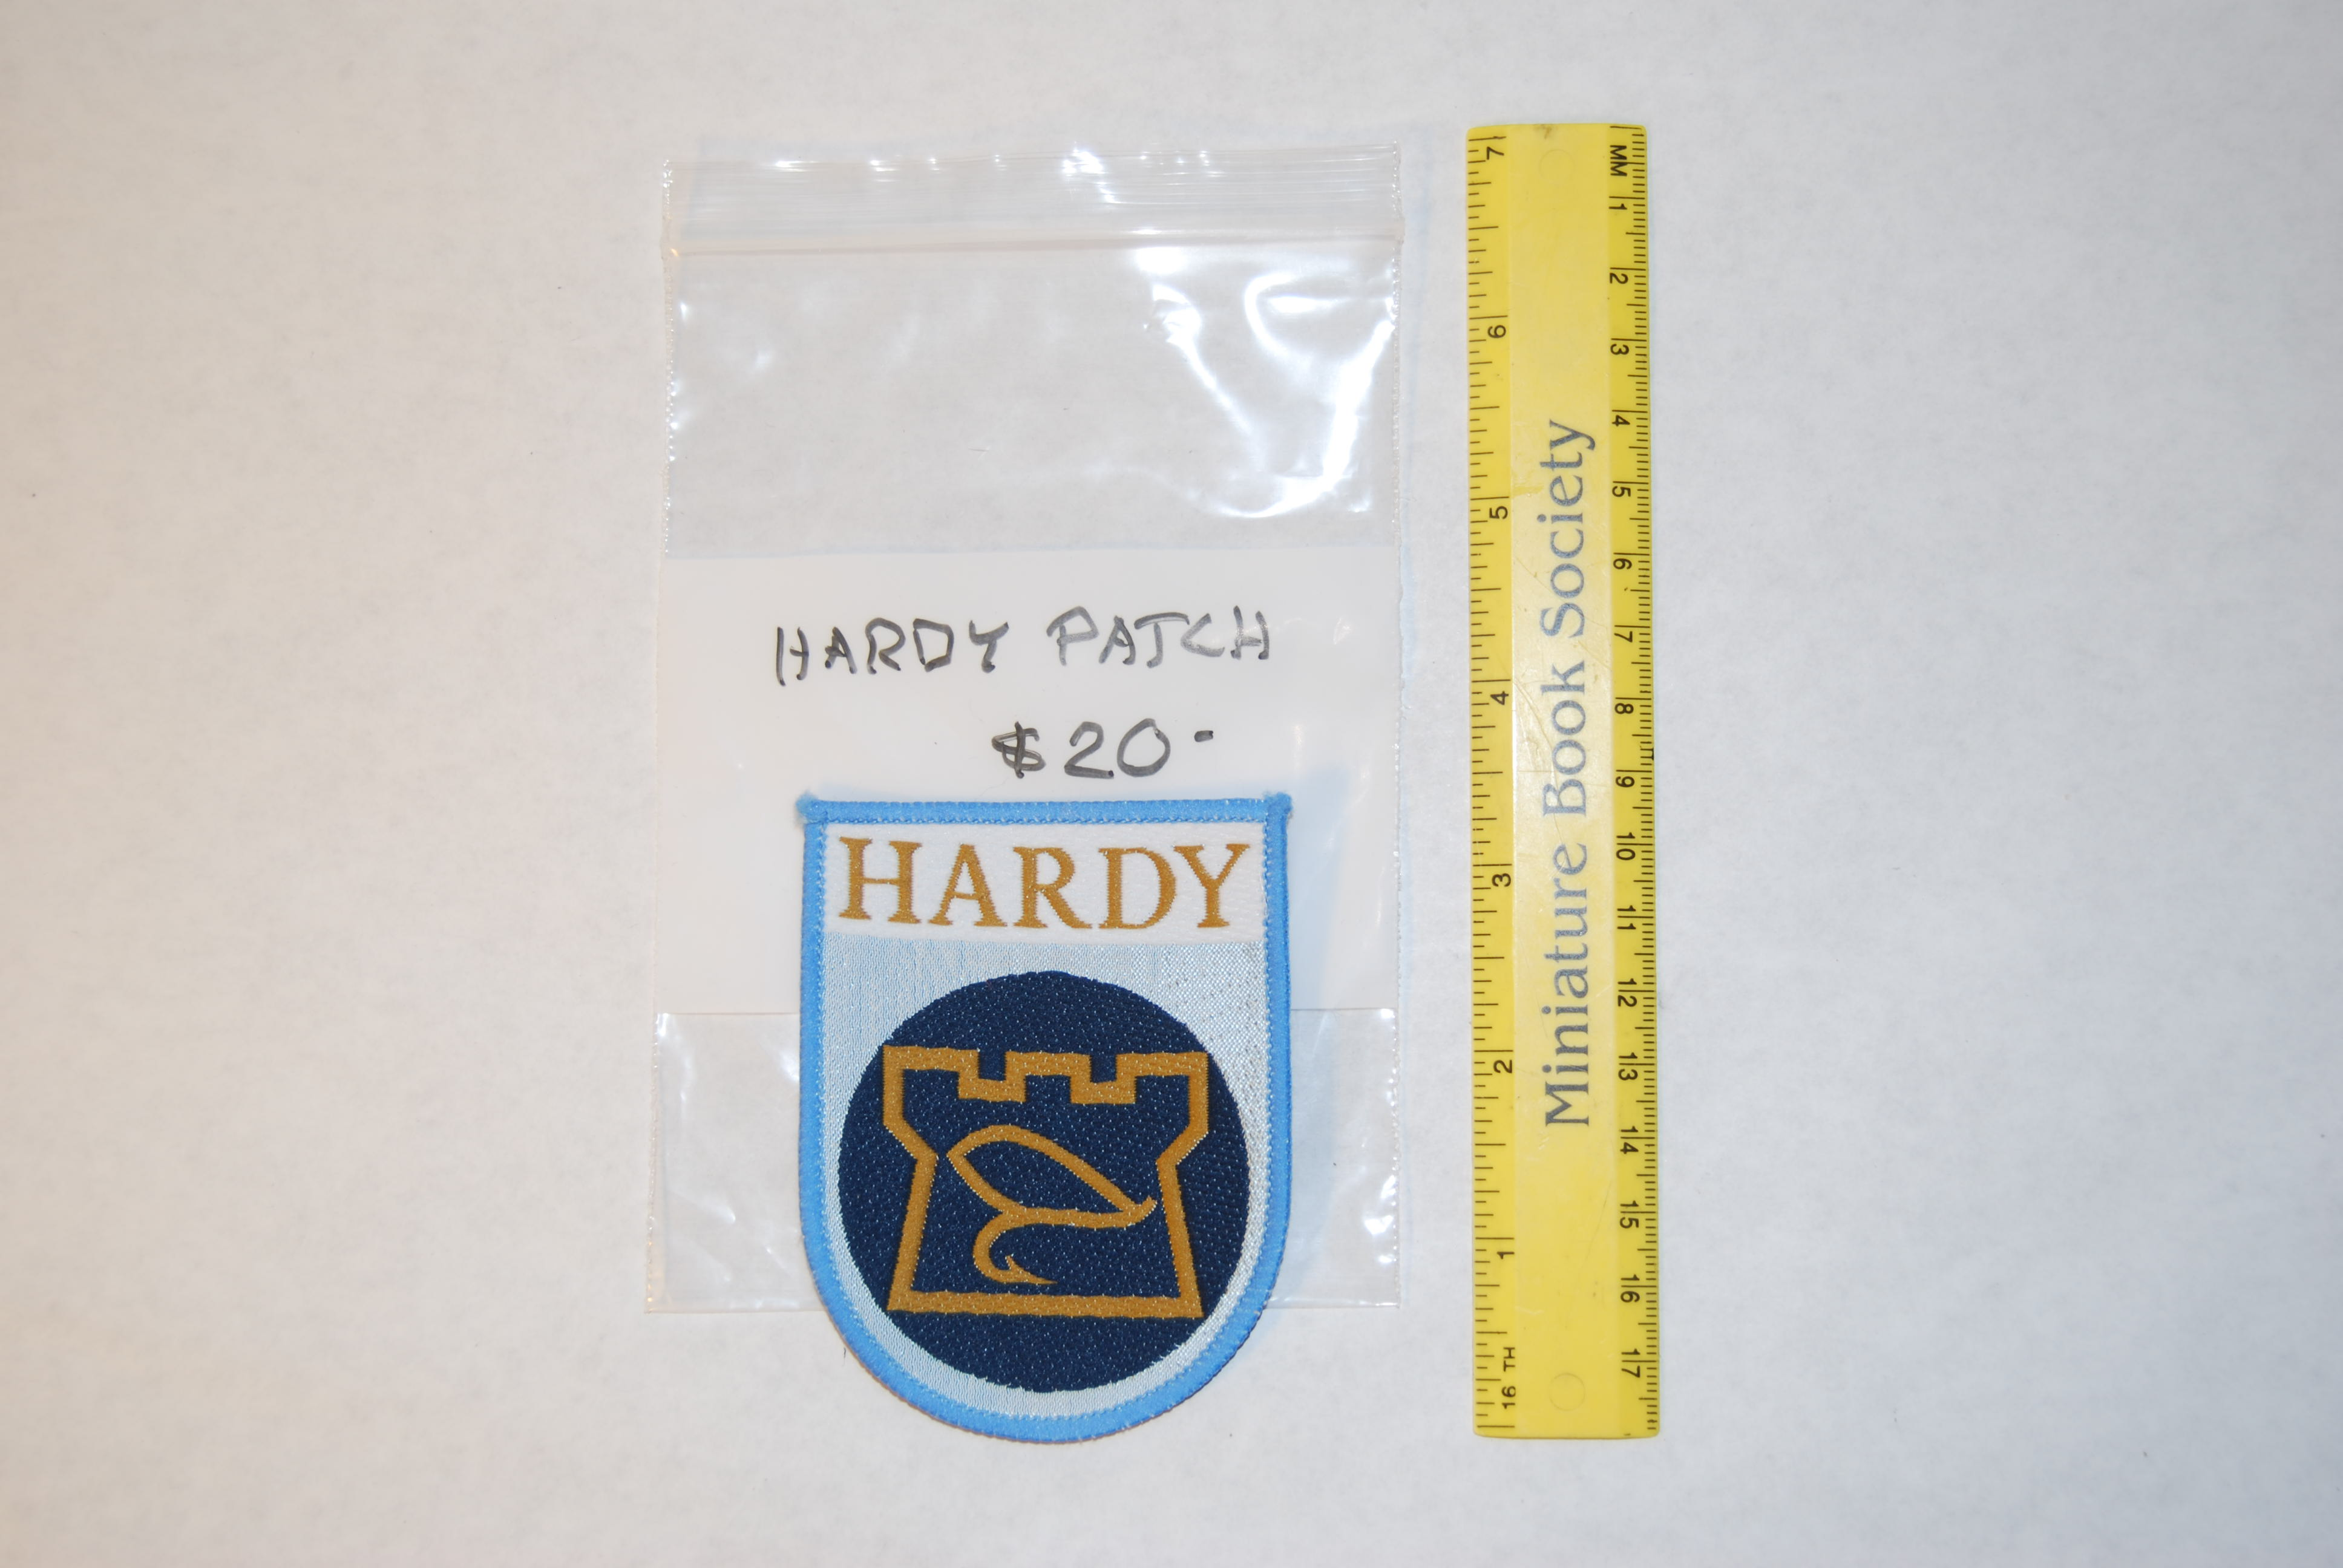 "Image for HARDY JACKET PATCH 3 1/2 in. x 2 1/2  in. Gold ""HARDY"" & Logo on mixed blue background."